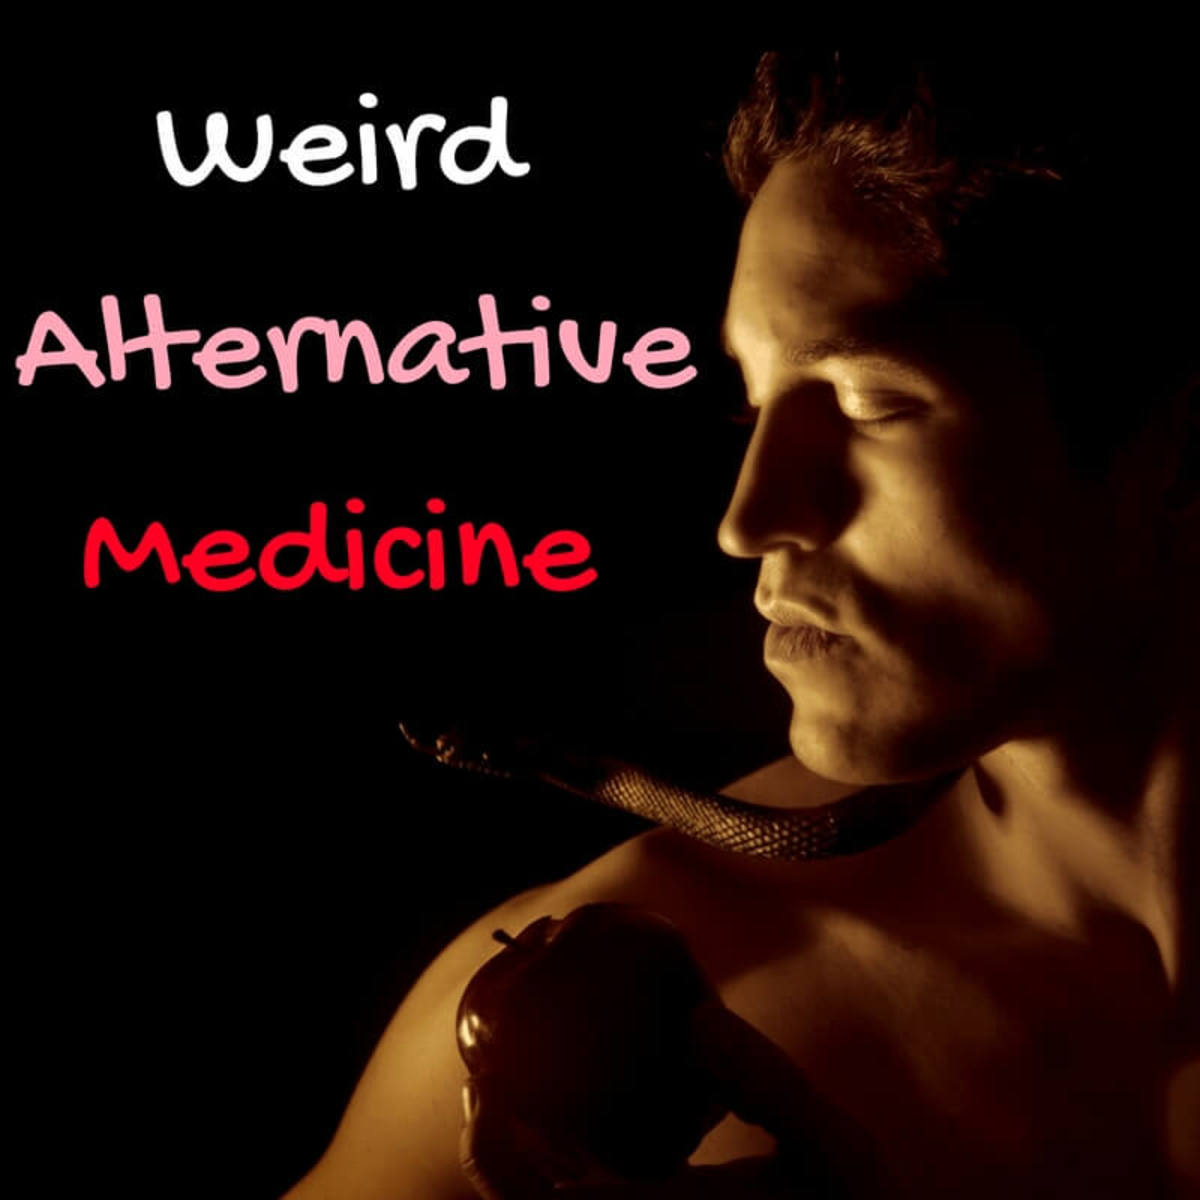 Weird Complementary & Alternative Medicine, Treatments and Therapies in Asia